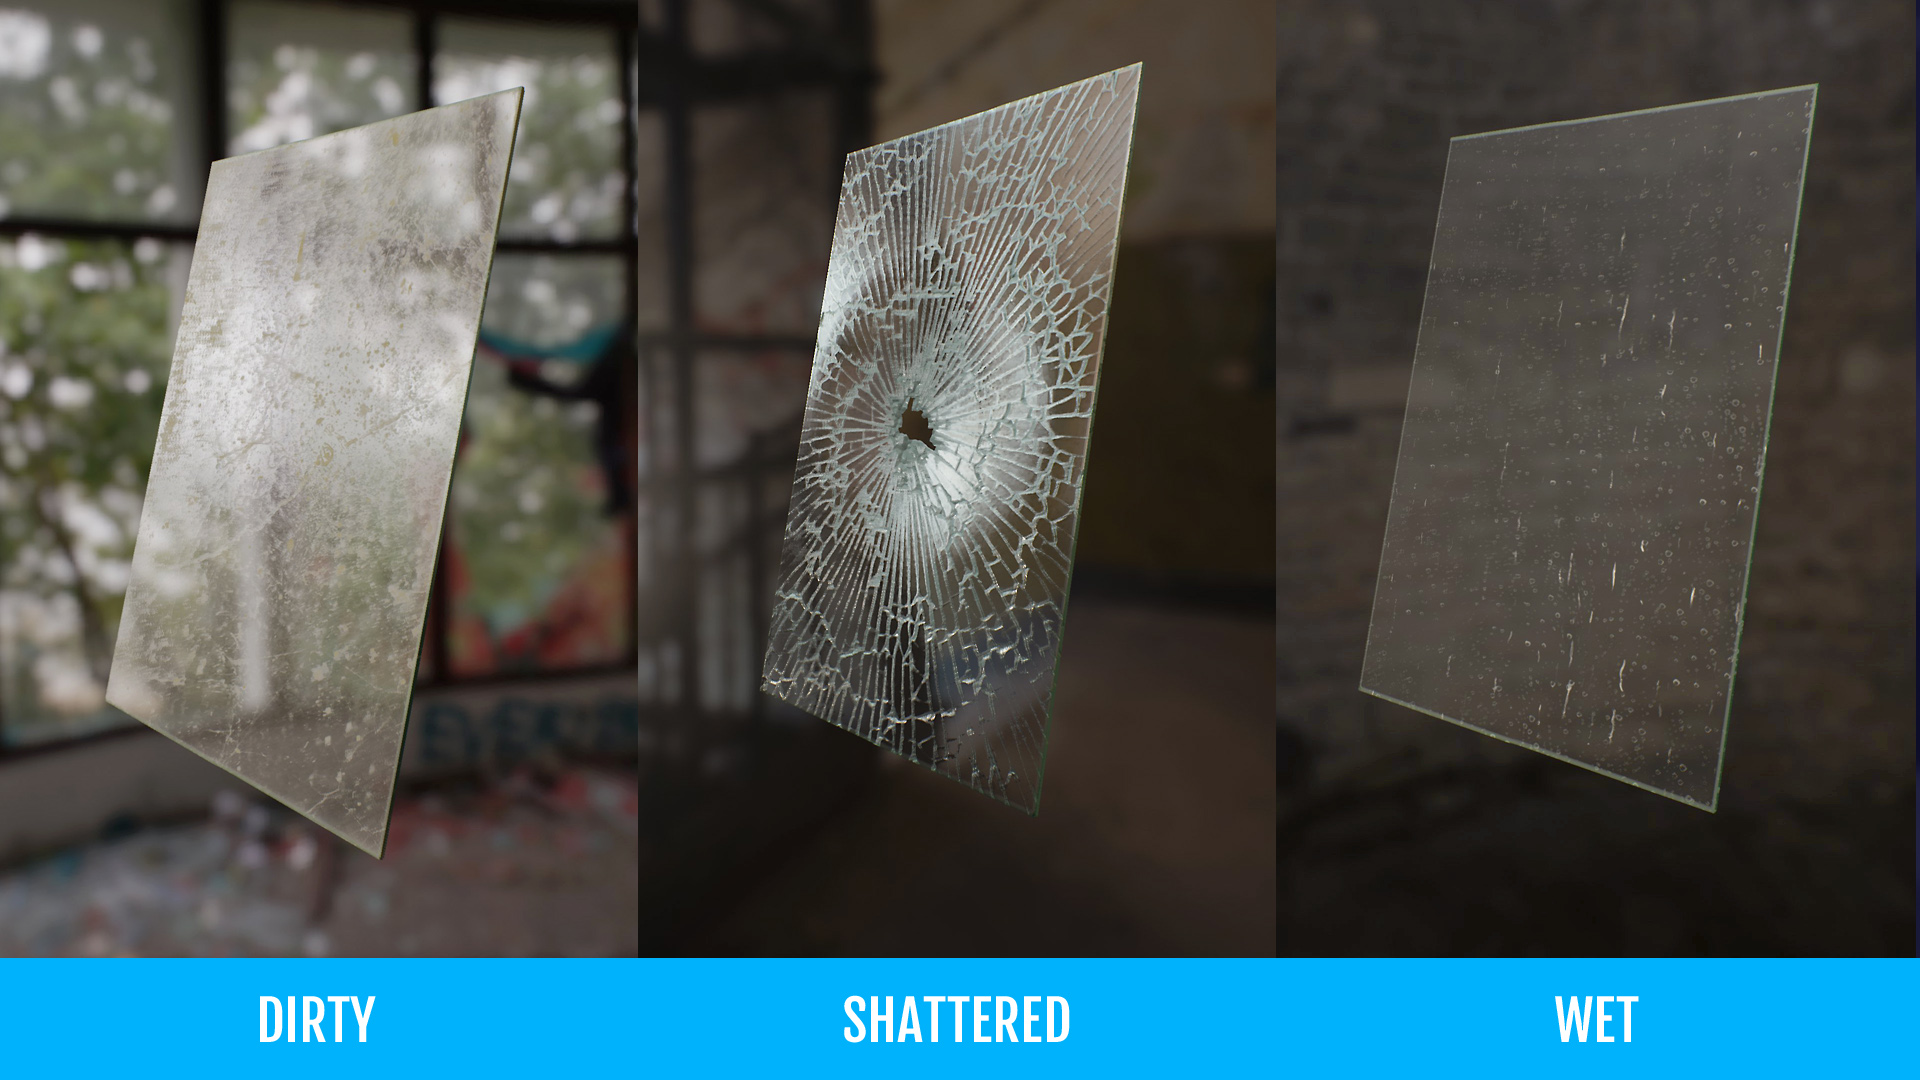 UE4 Material – Glass | Unreal Engine 4 blog